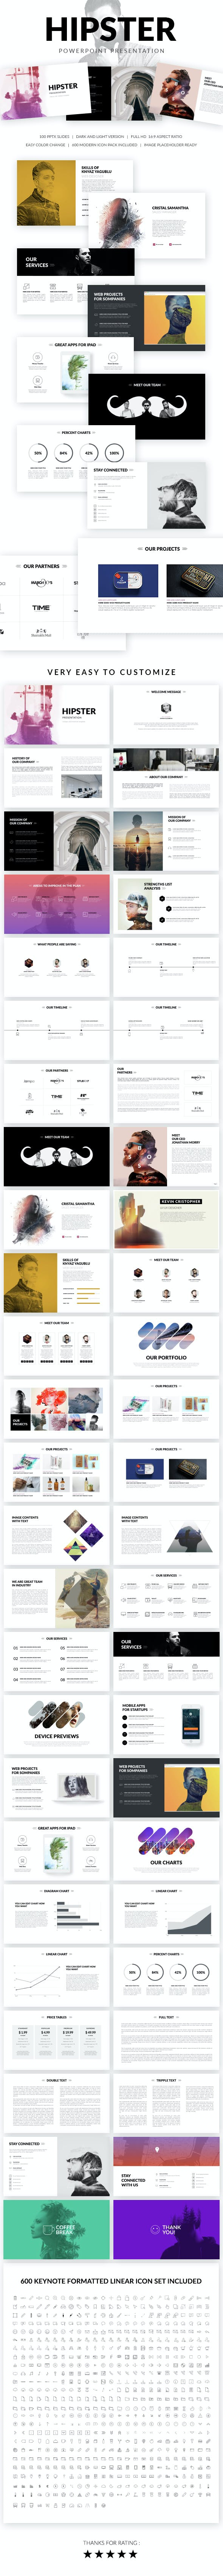 hipster powerpoint presentation template by knyazyaqublu graphicriver